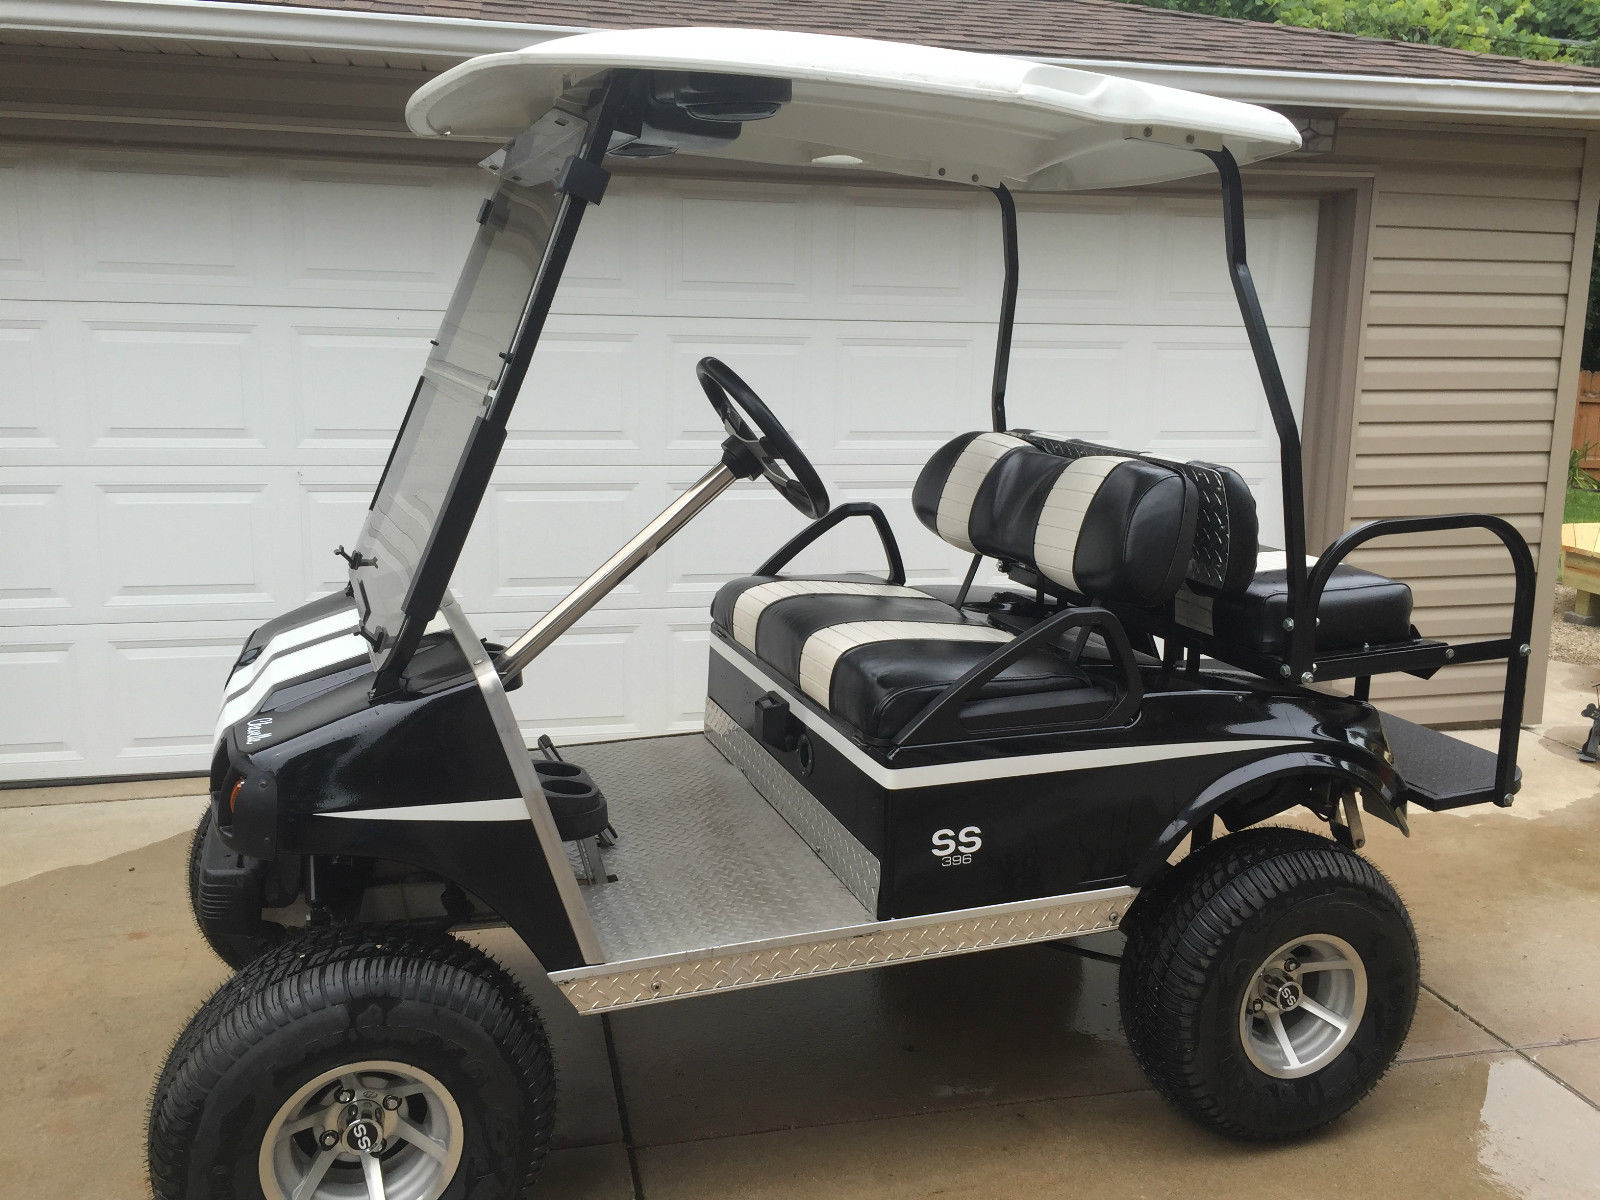 Fr 5720 moreover 217 together with Gloss Black Blue Seats Rims Custom Golf Cart Ezg 012 besides Club Car Golf Cart Accessories Uk also Super Atv 4 Inch Lift Kit Can Am Renegade. on yamaha golf cart 6 in lift